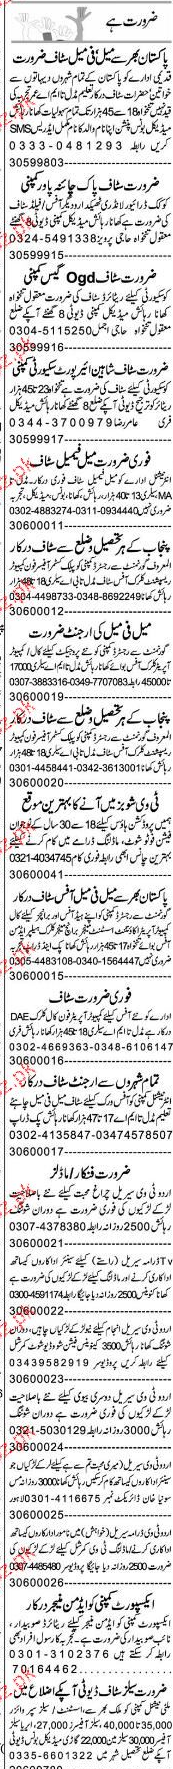 Receptionists, Clerks, Office Boys Job Opportunity